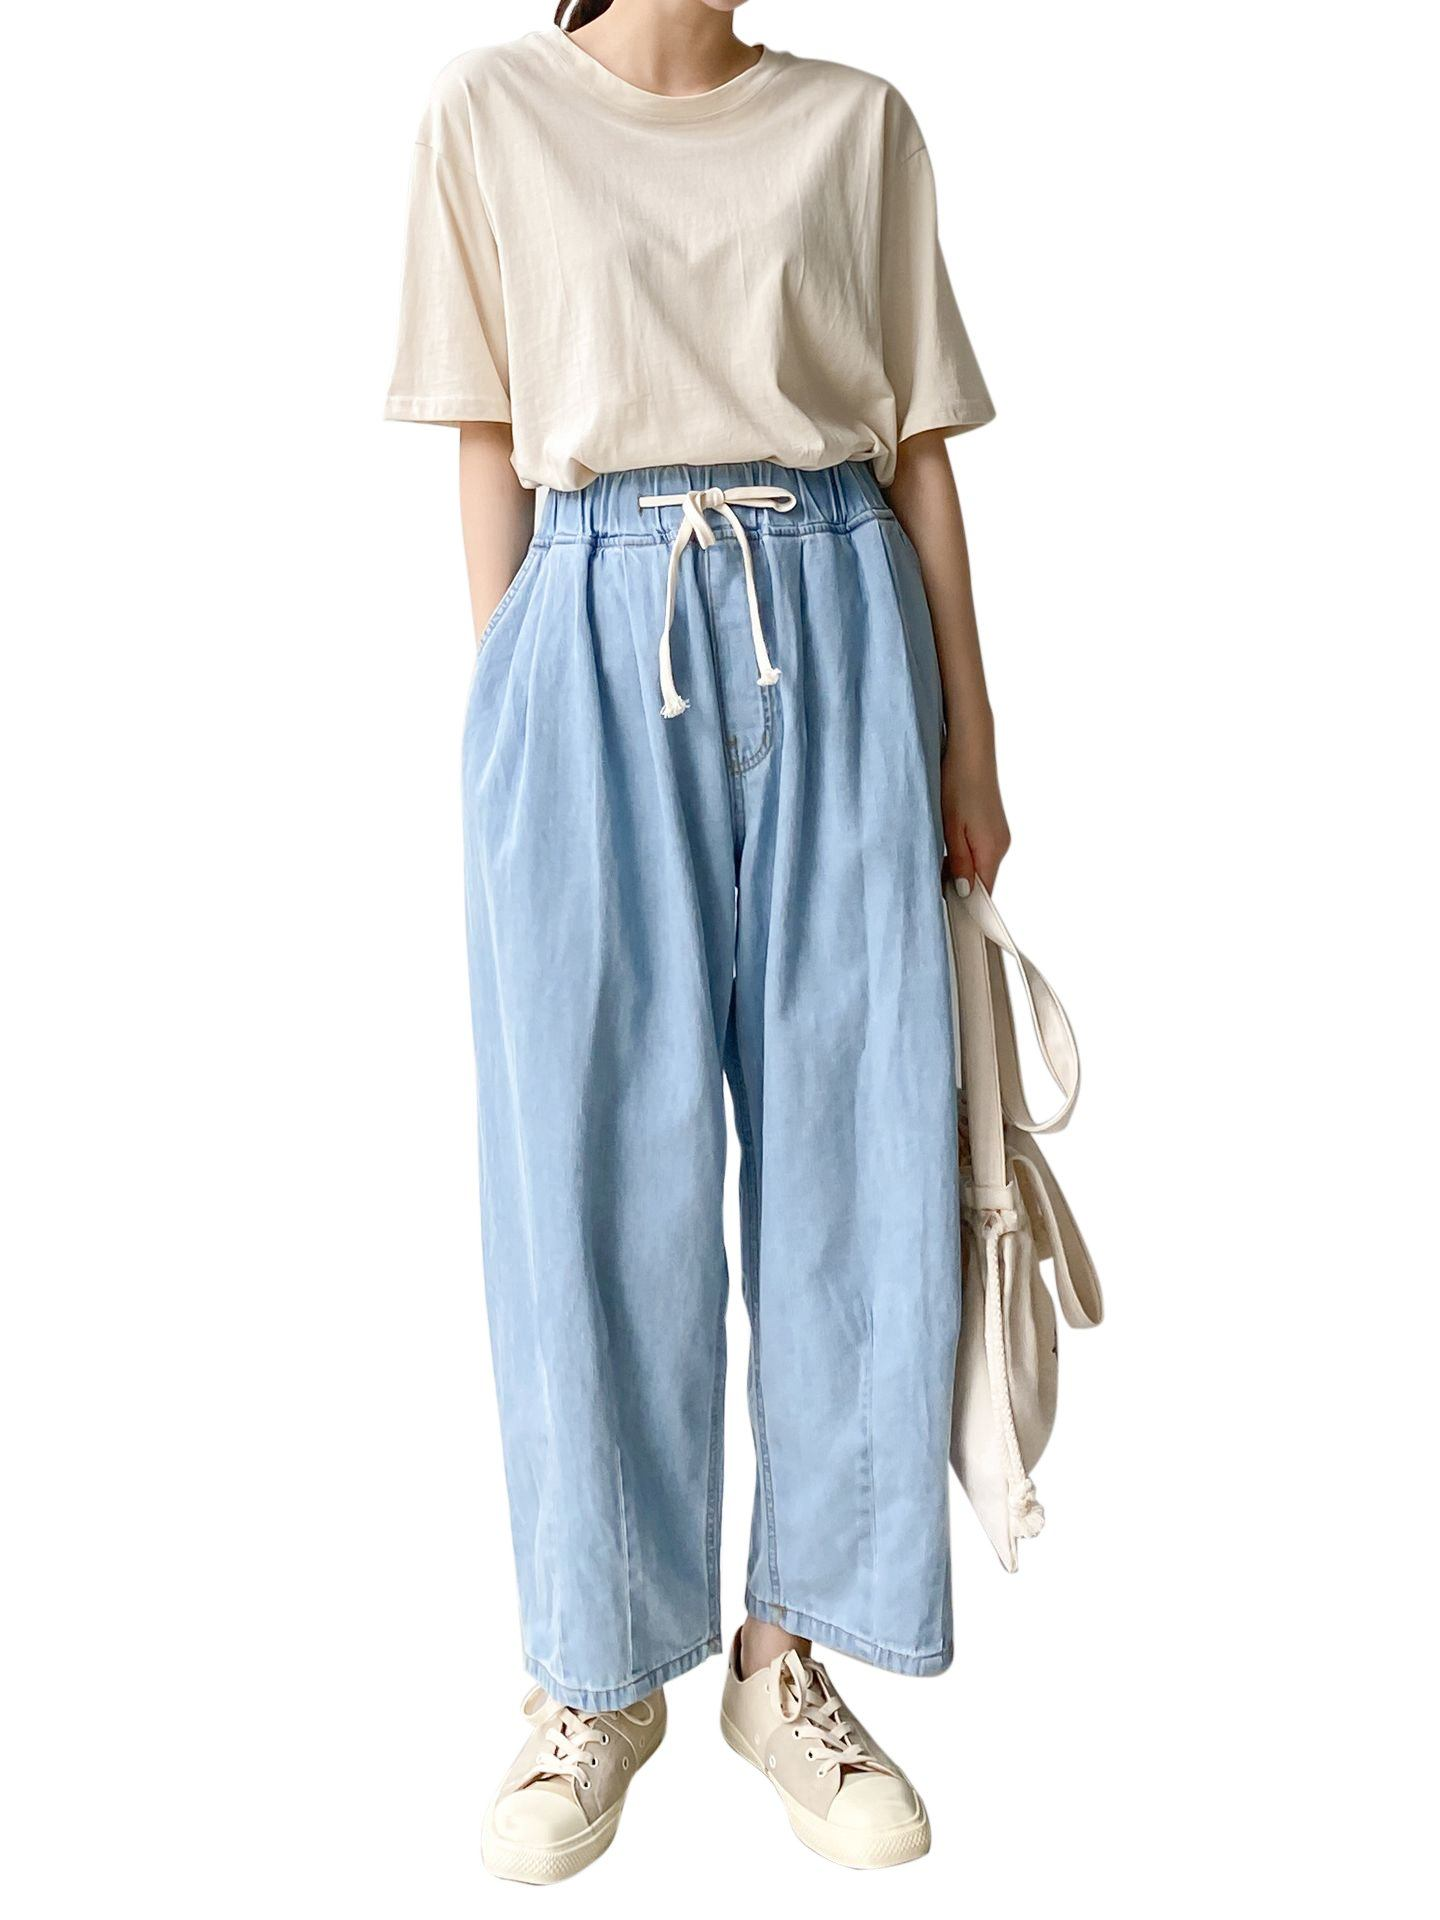 5062 Jean Baggy Bouffanteac Jean Baggy Womens Clothing From Korea